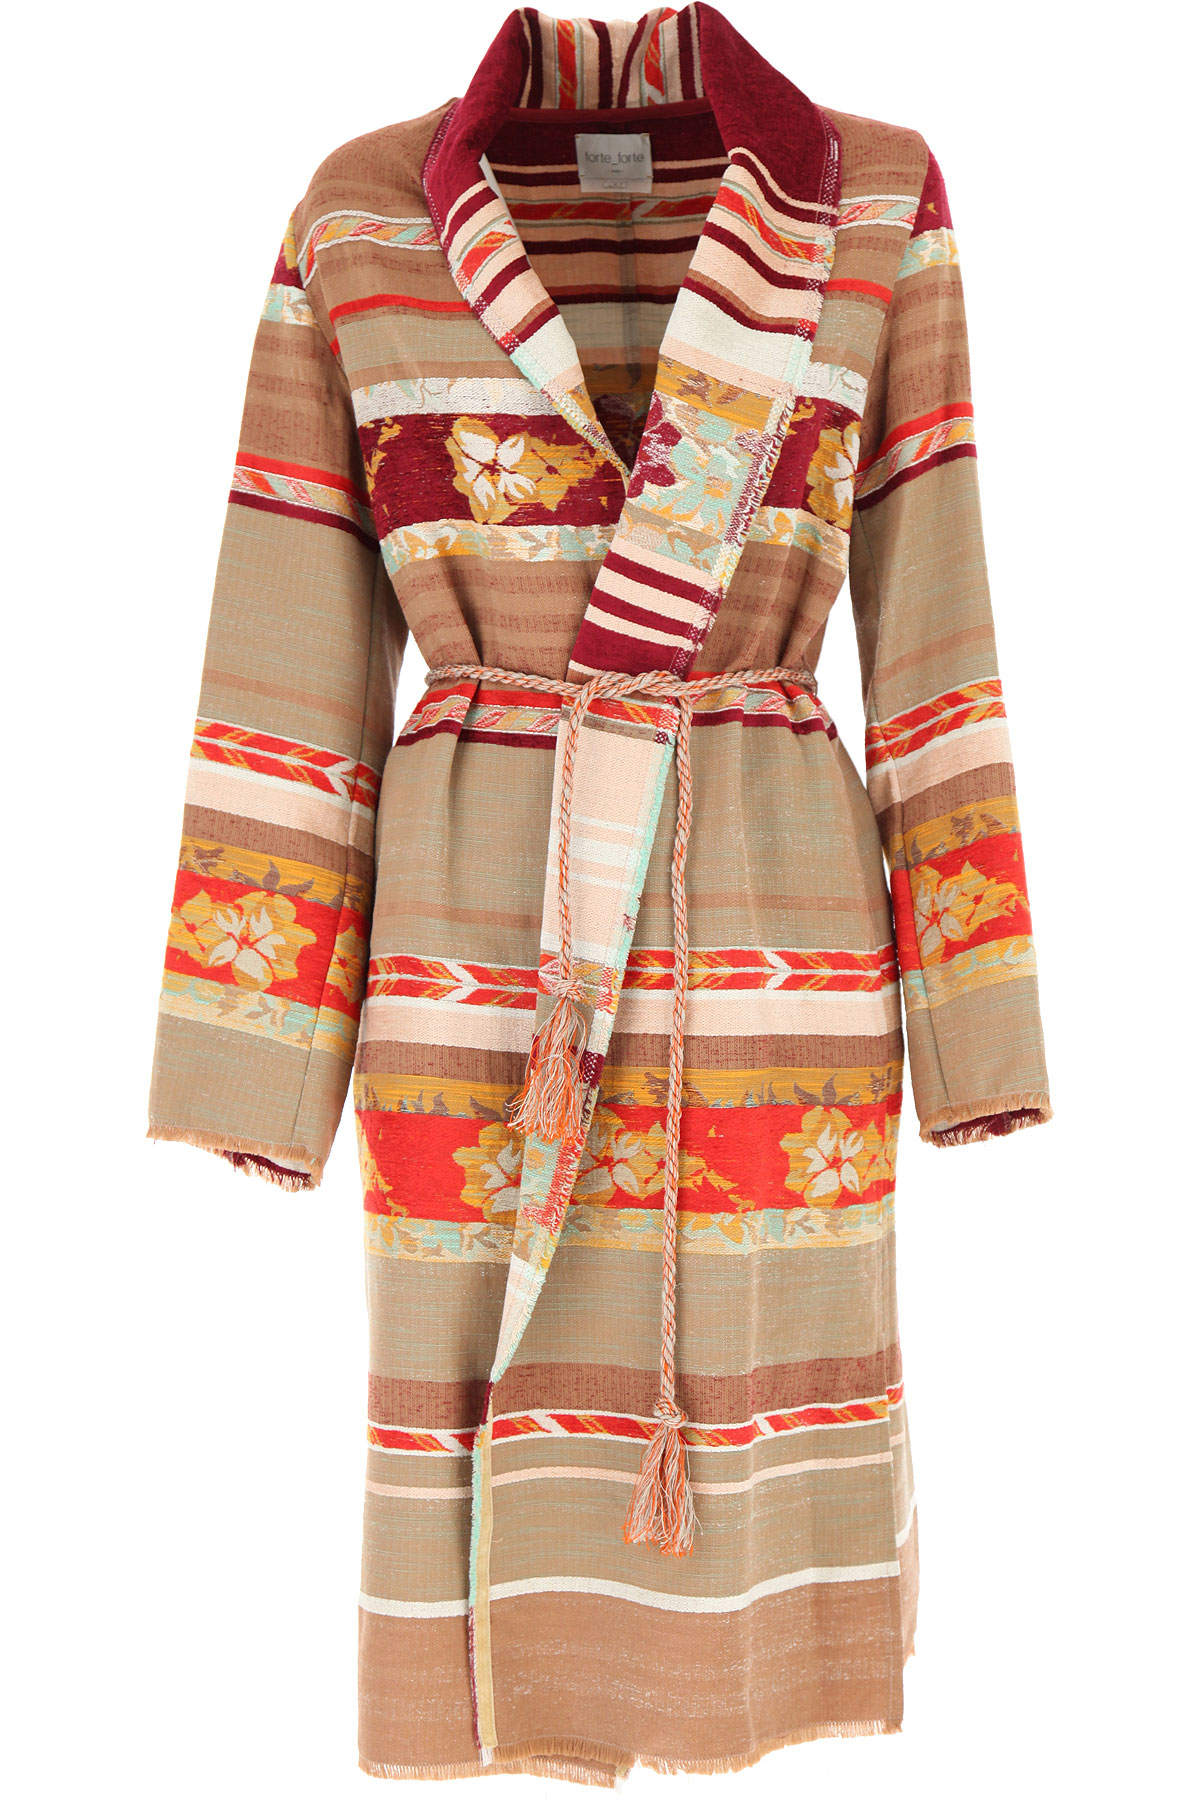 Forte Forte Women's Coat On Sale, Multicolor, Viscose, 2019, 1 - S - IT 40 2 - M - IT 42